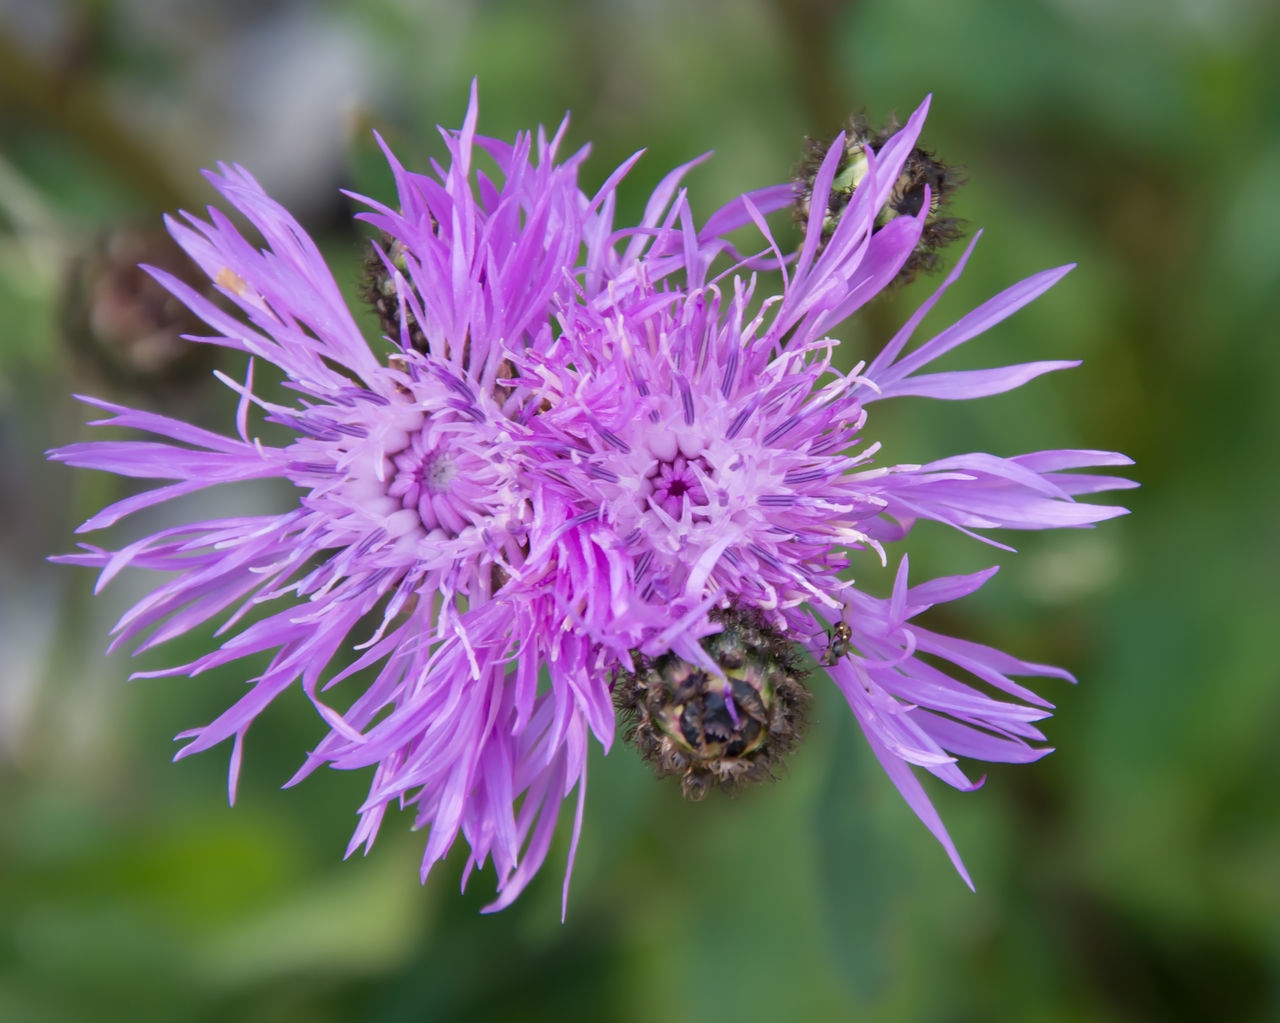 Cardo Close-up Color Palette Flower In Bloom Outdoors Petal Pink Color Purple Thistle Thistle Flower Two Is Better Than One